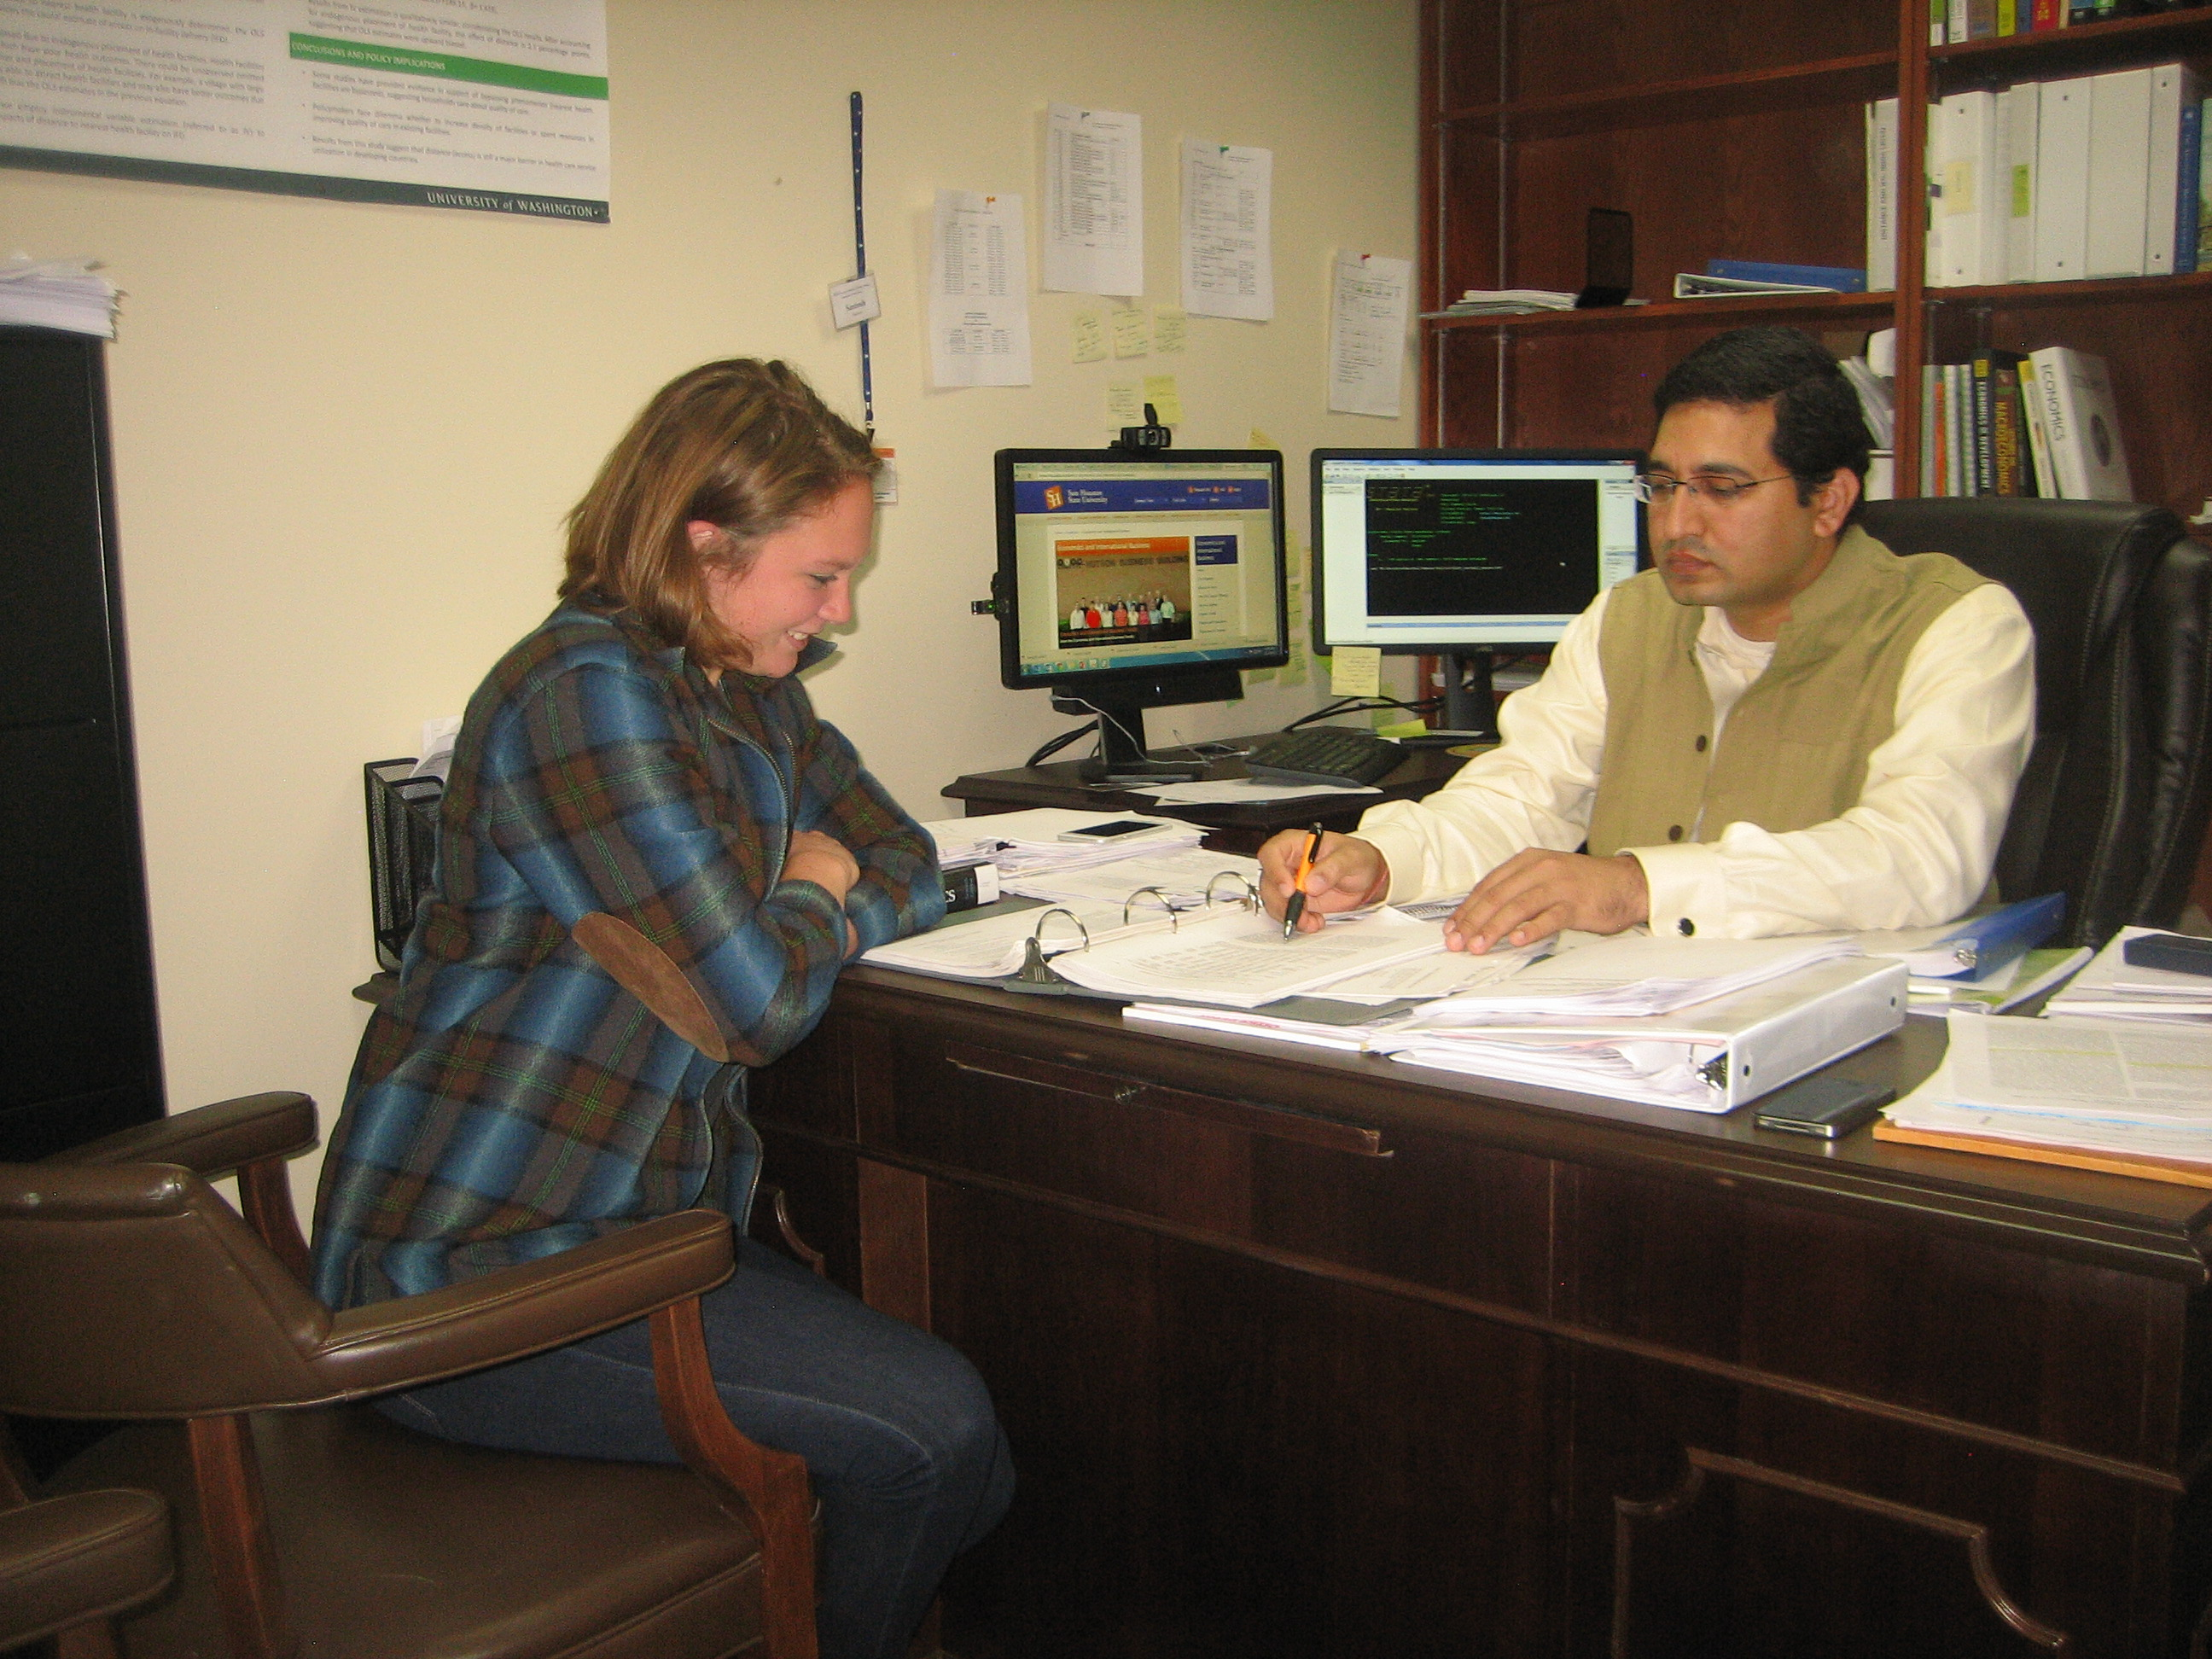 research papers microfinance poverty How to write microfinance dissertation  through the pain of conducting an original research on  is the most effective method to reduce poverty while.